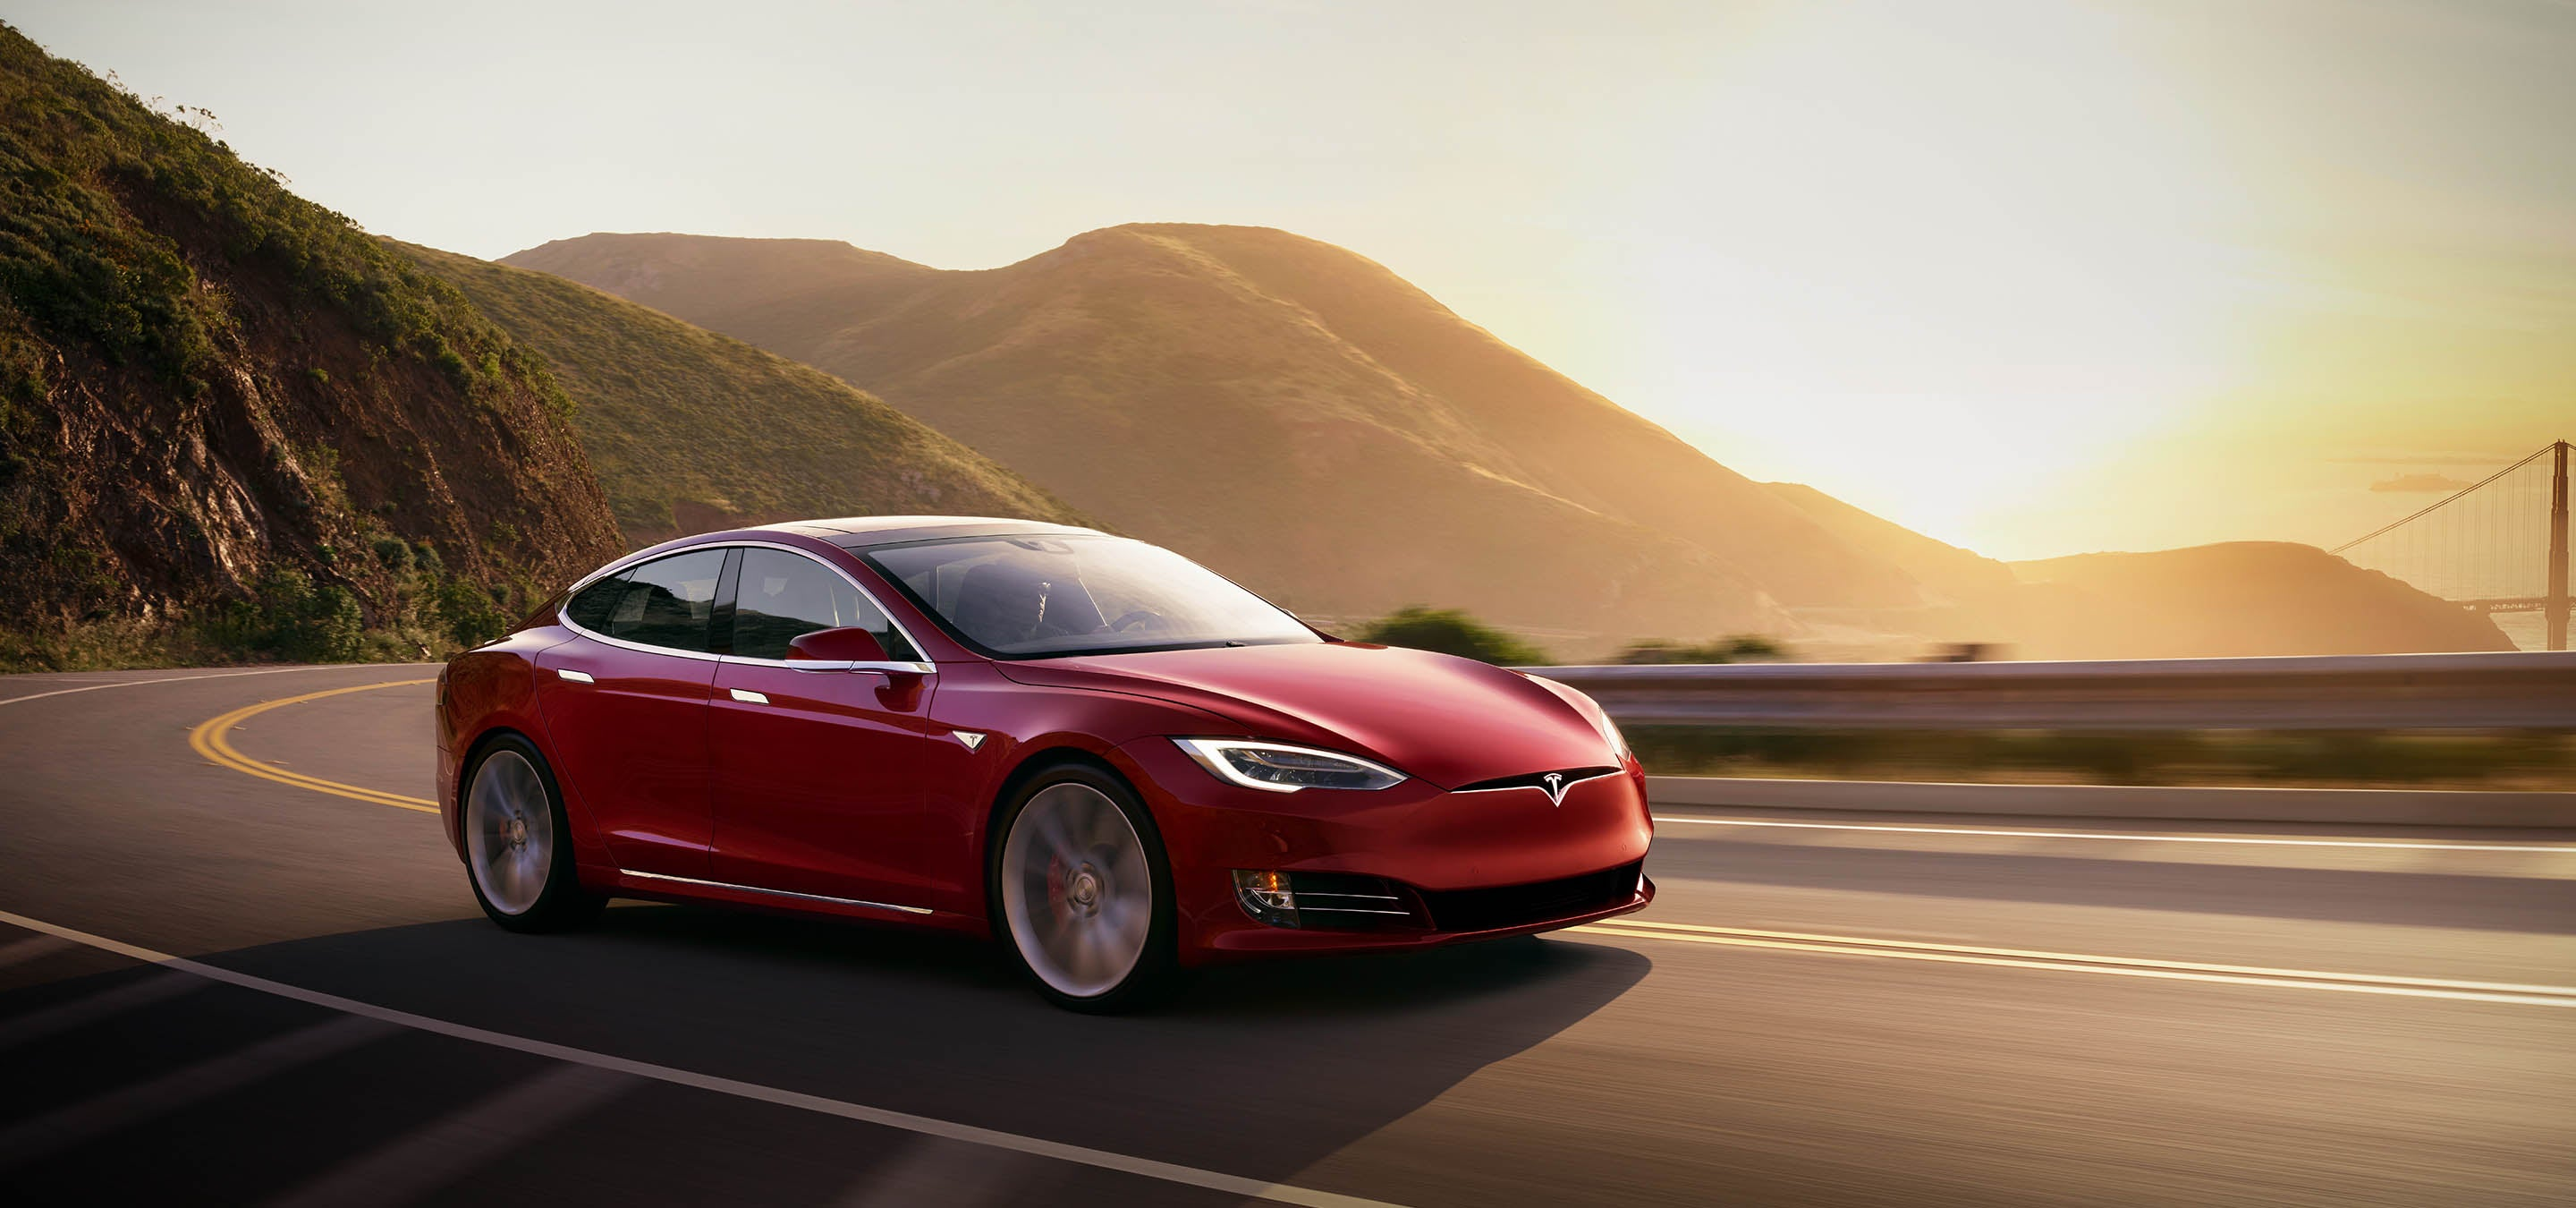 Why Tesla Stock Fell 14.9% in February